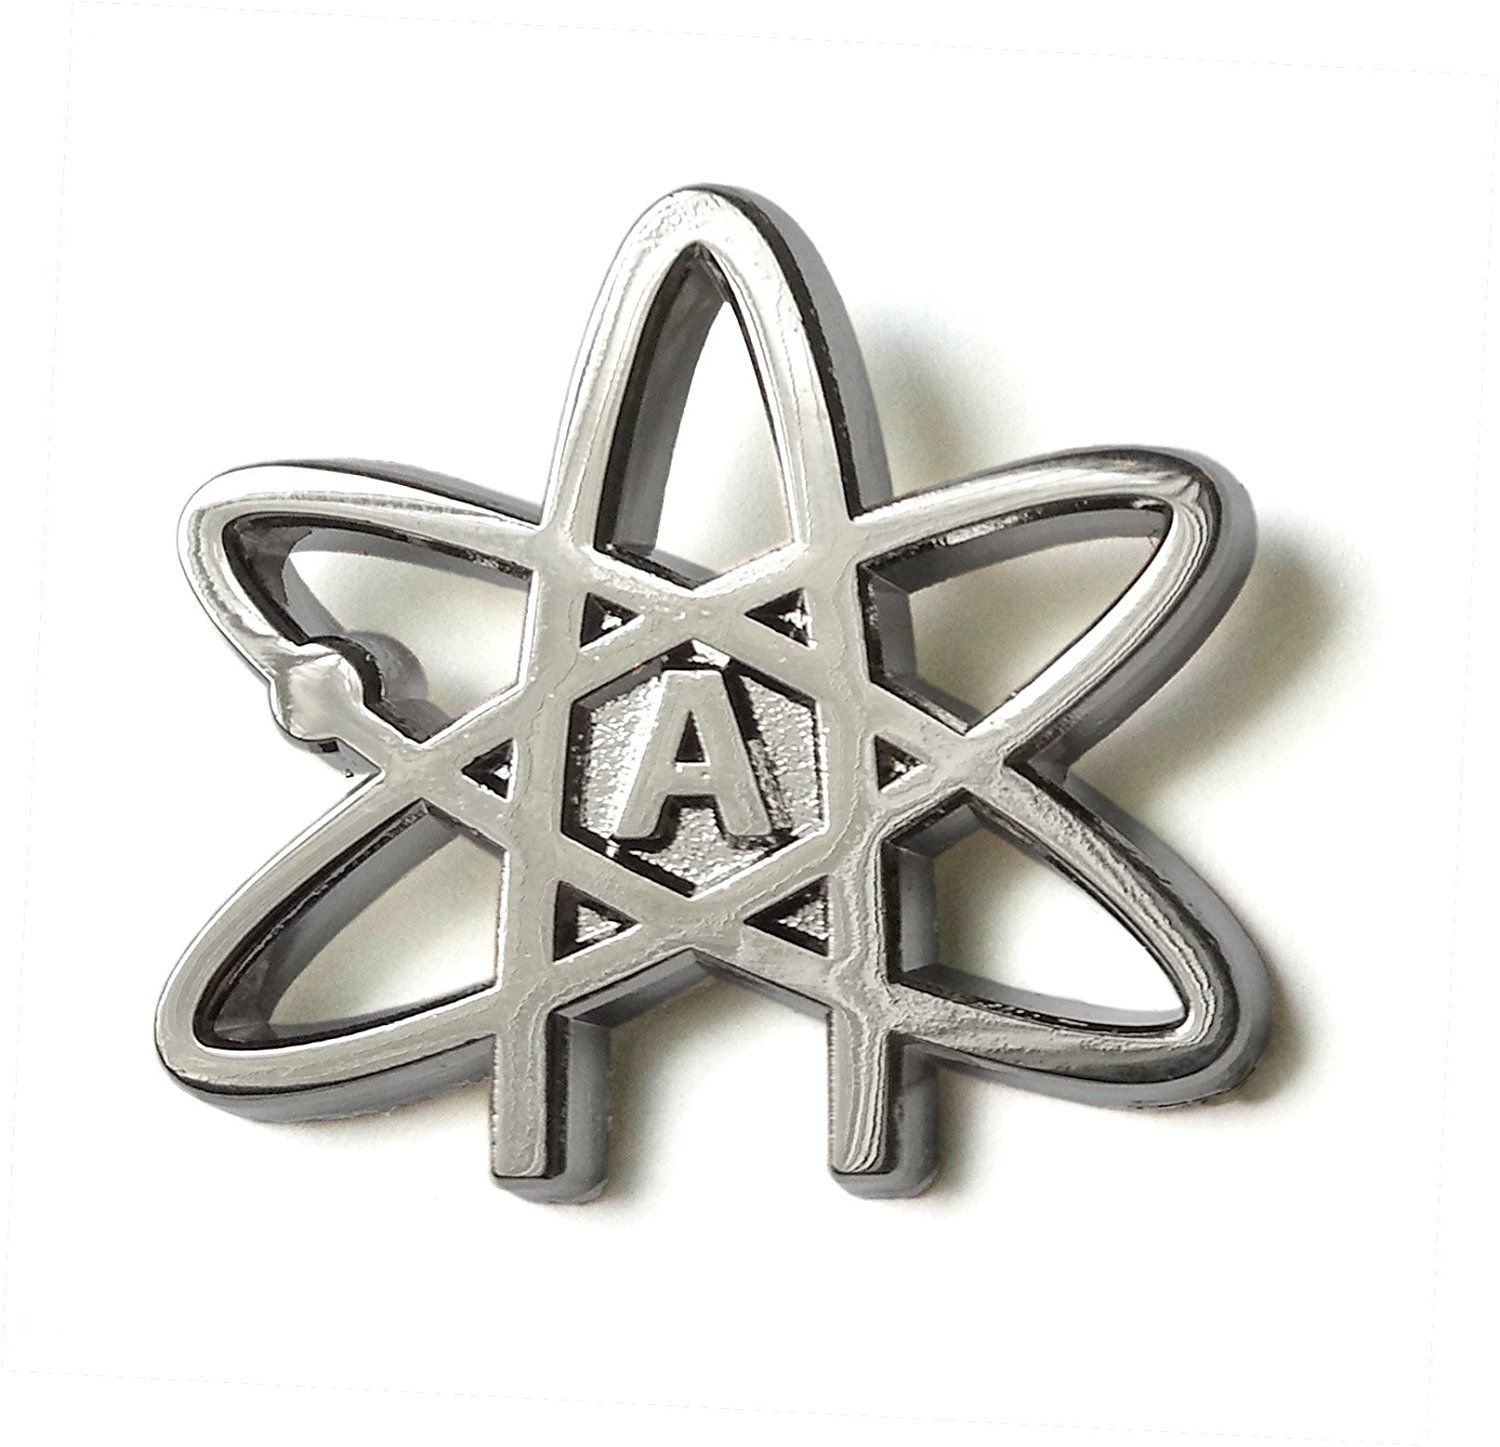 Atheist Symbol Lapel Pin Jewelry Pins And Patches Pinterest